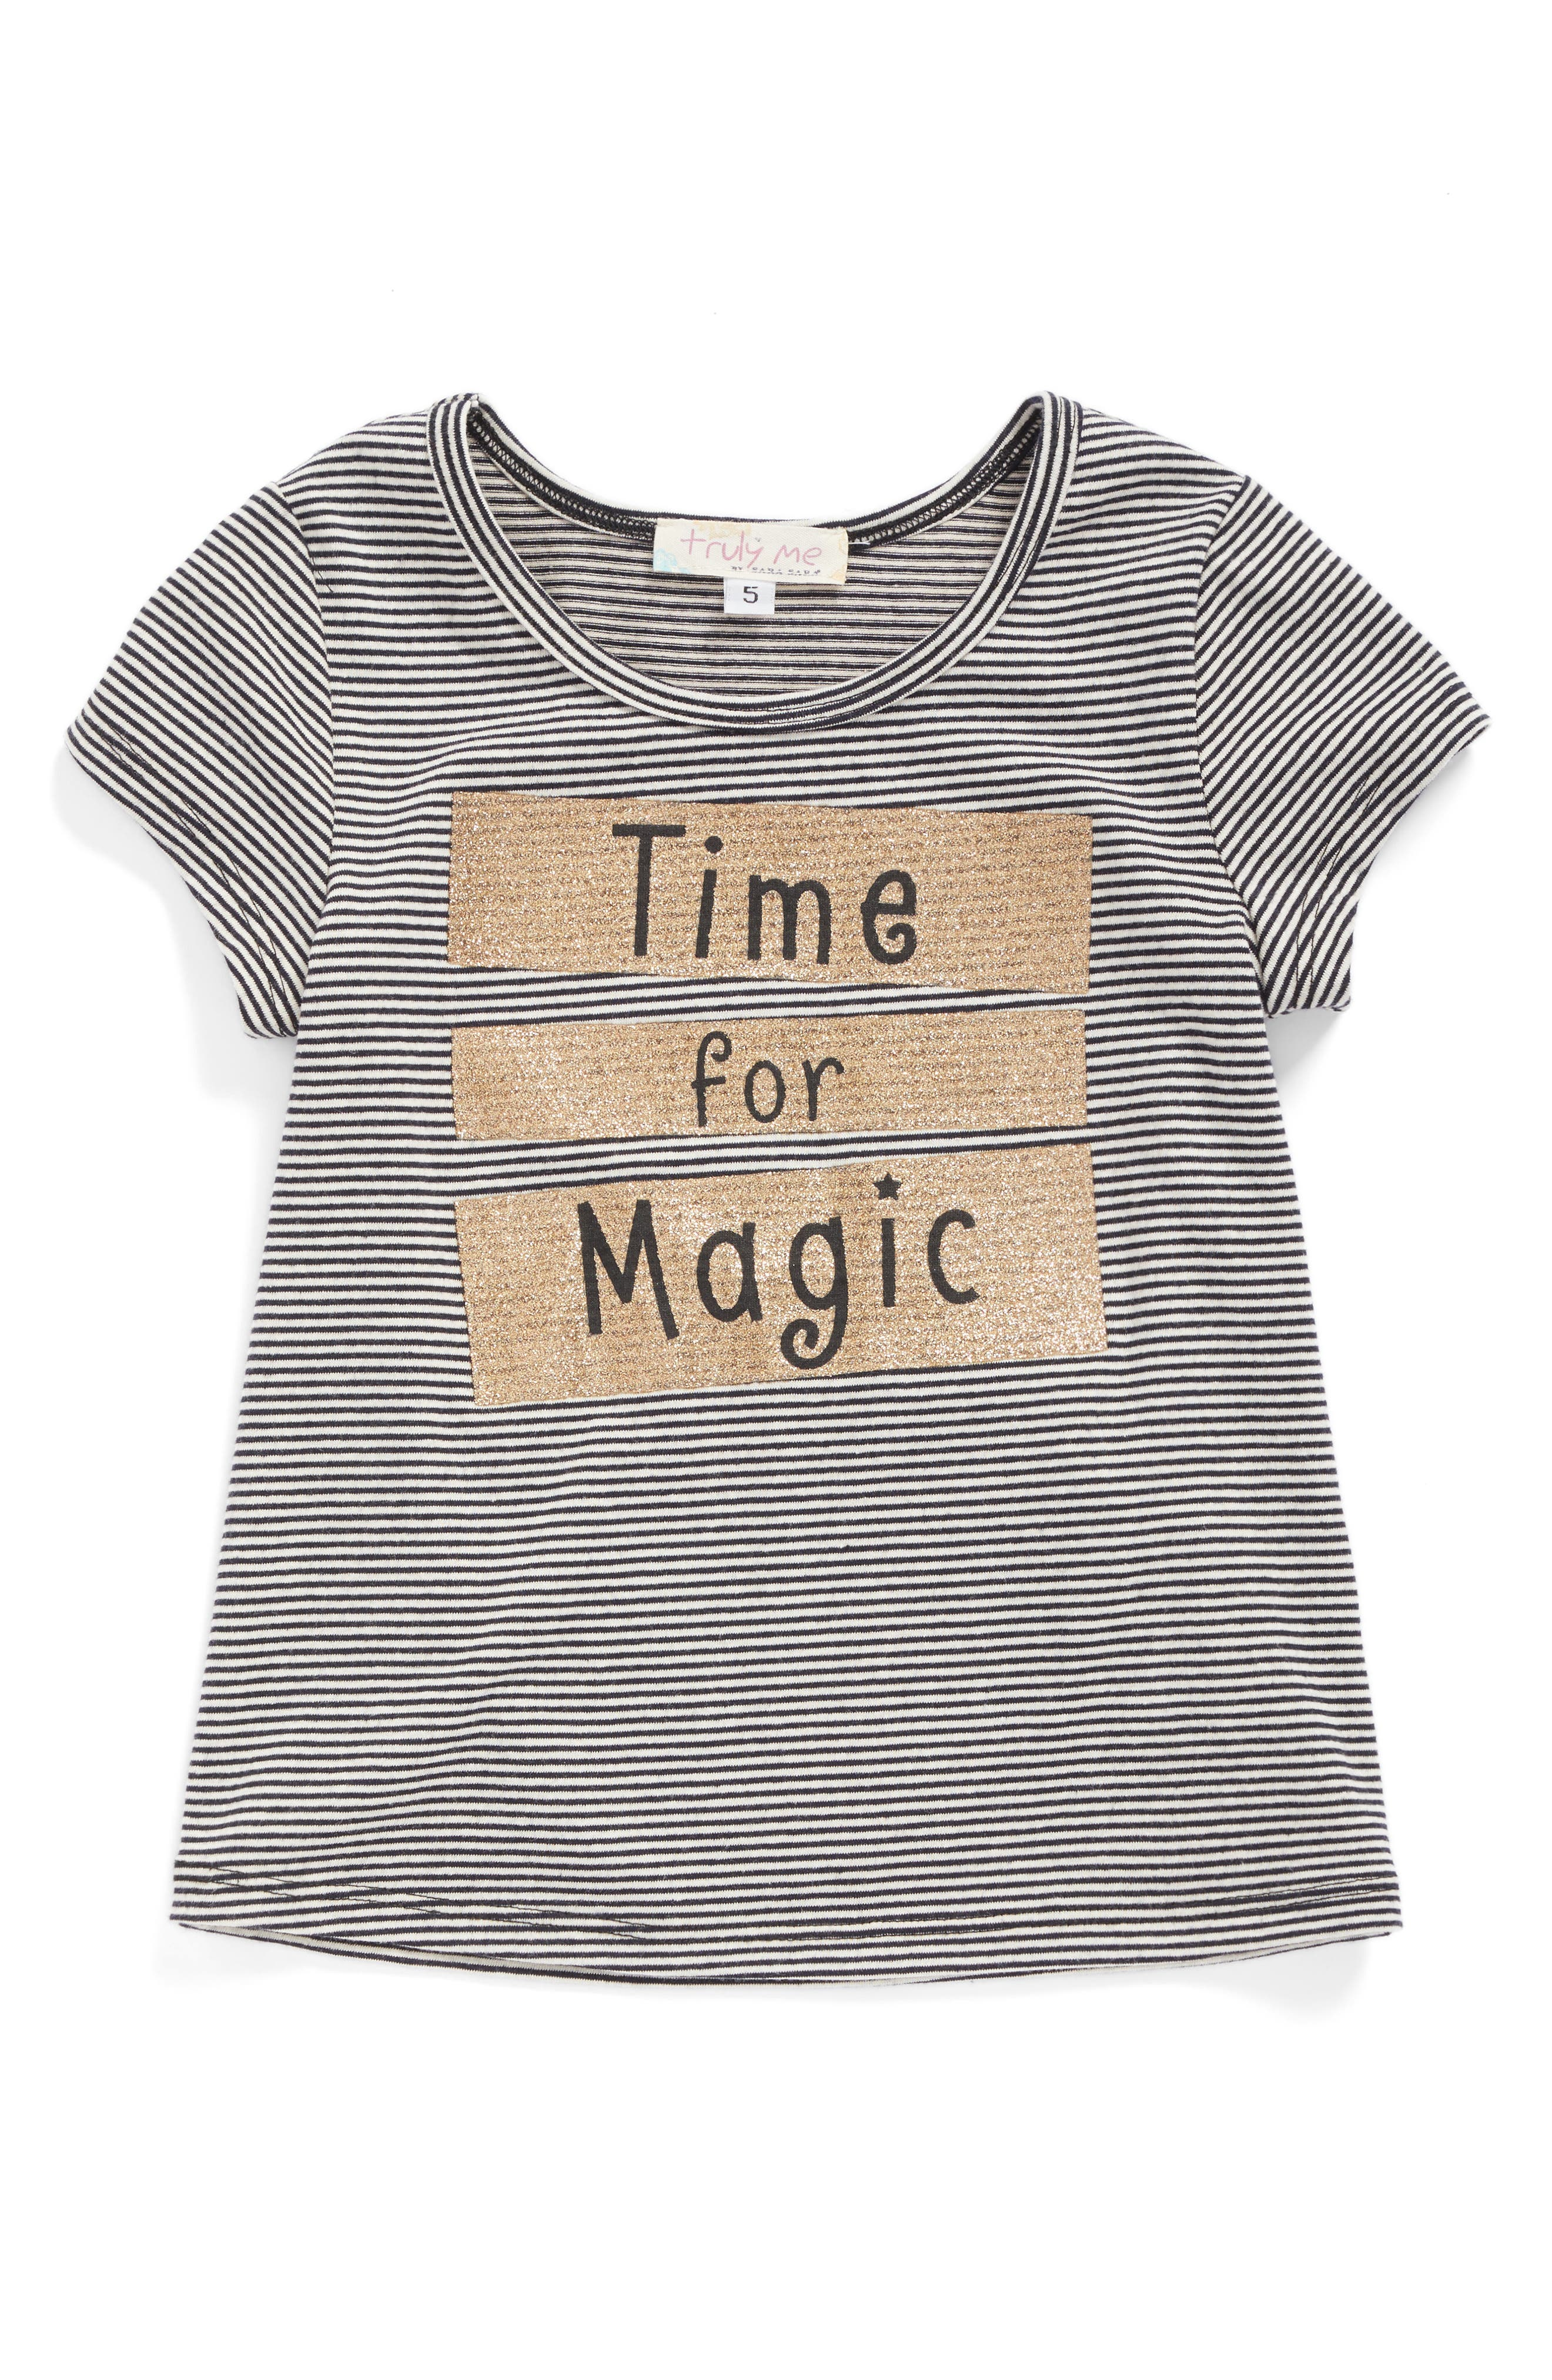 Truly Me Time For Magic Tee (Toddler Girls & Little Girls)